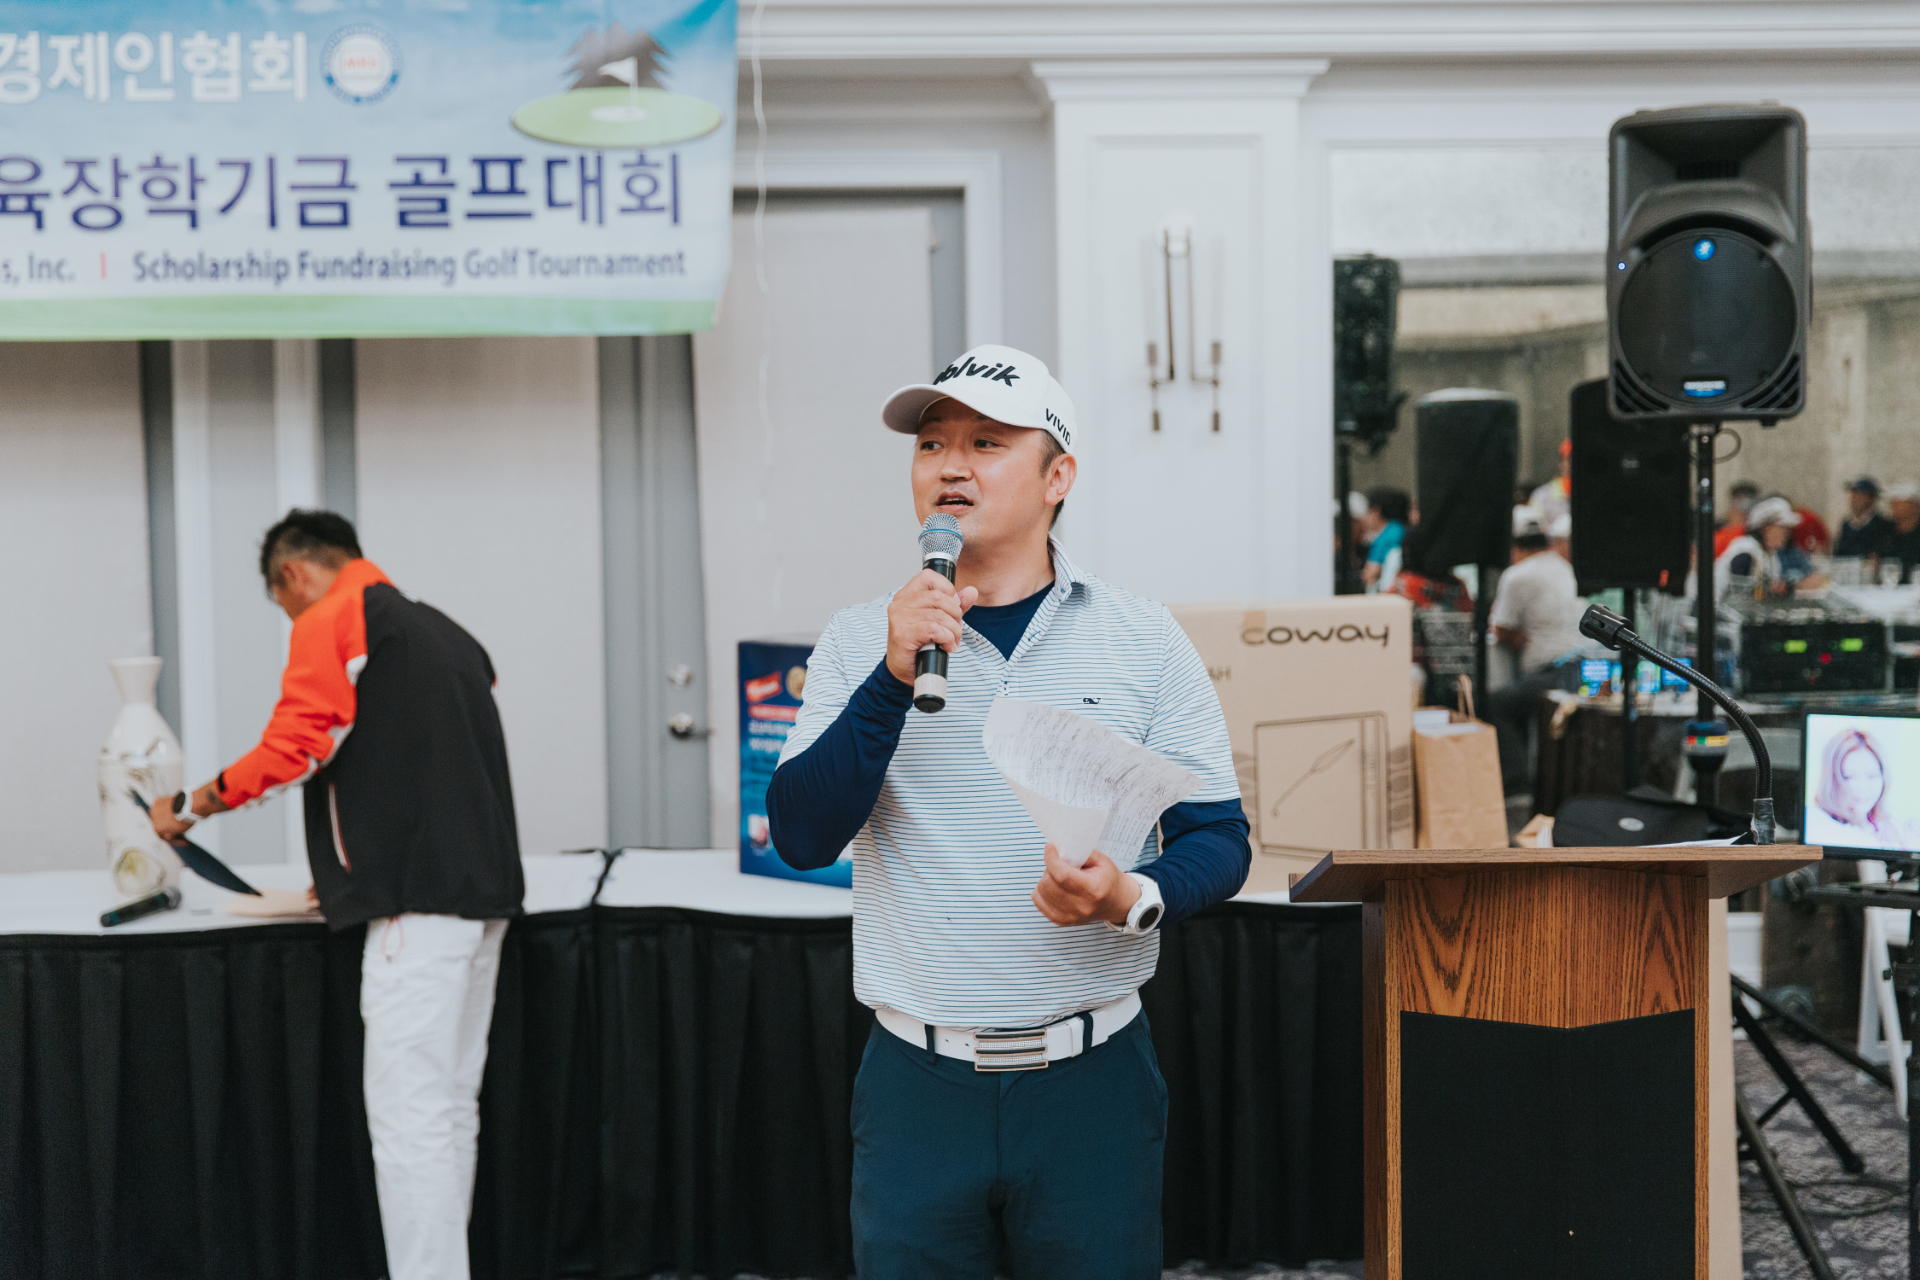 https://nykbi.com/new/wp-content/uploads/2019/07/190619-Scholarship-Fundraising-Golf-Tournament-062.jpg